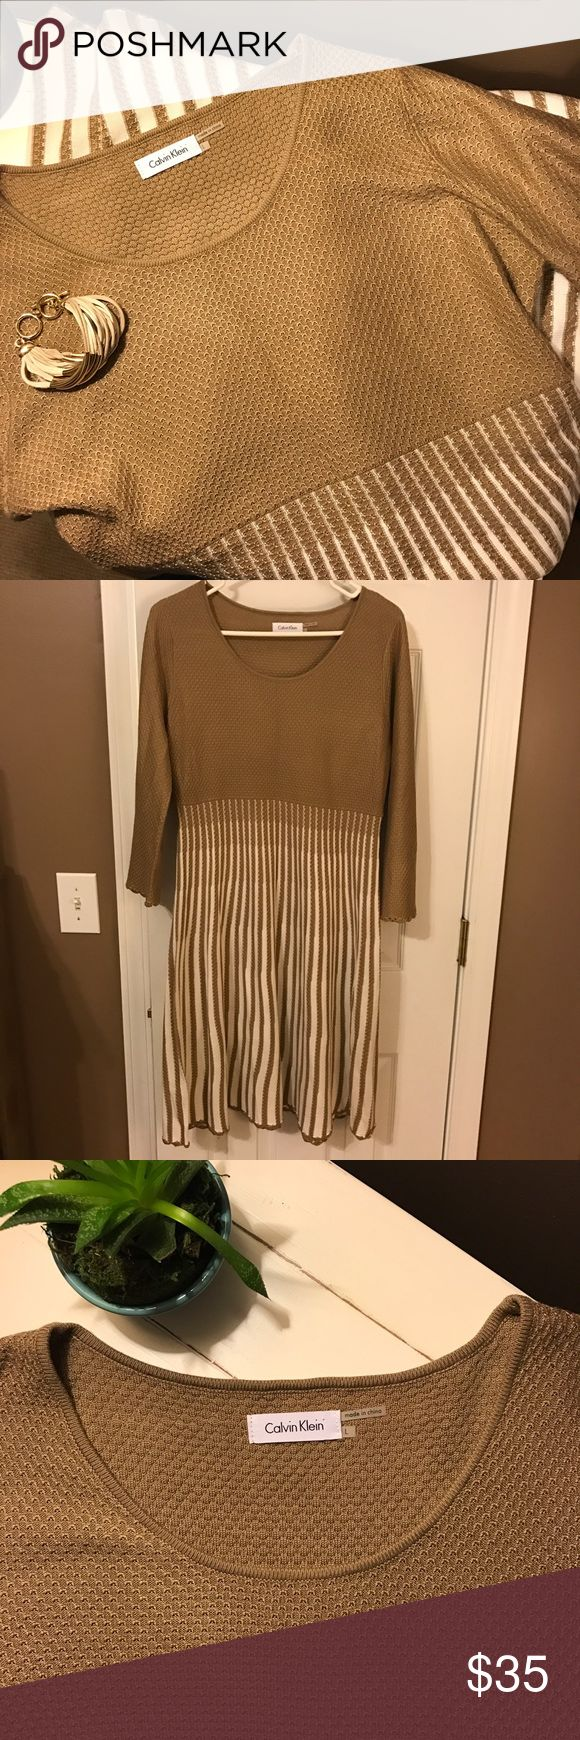 Calvin Klein Tan & Ivory Knit Dress- NWOT NWOT tan knit dress with long sleeves, fitted bodice and pleated skirt with ivory details. Calvin Klein Dresses